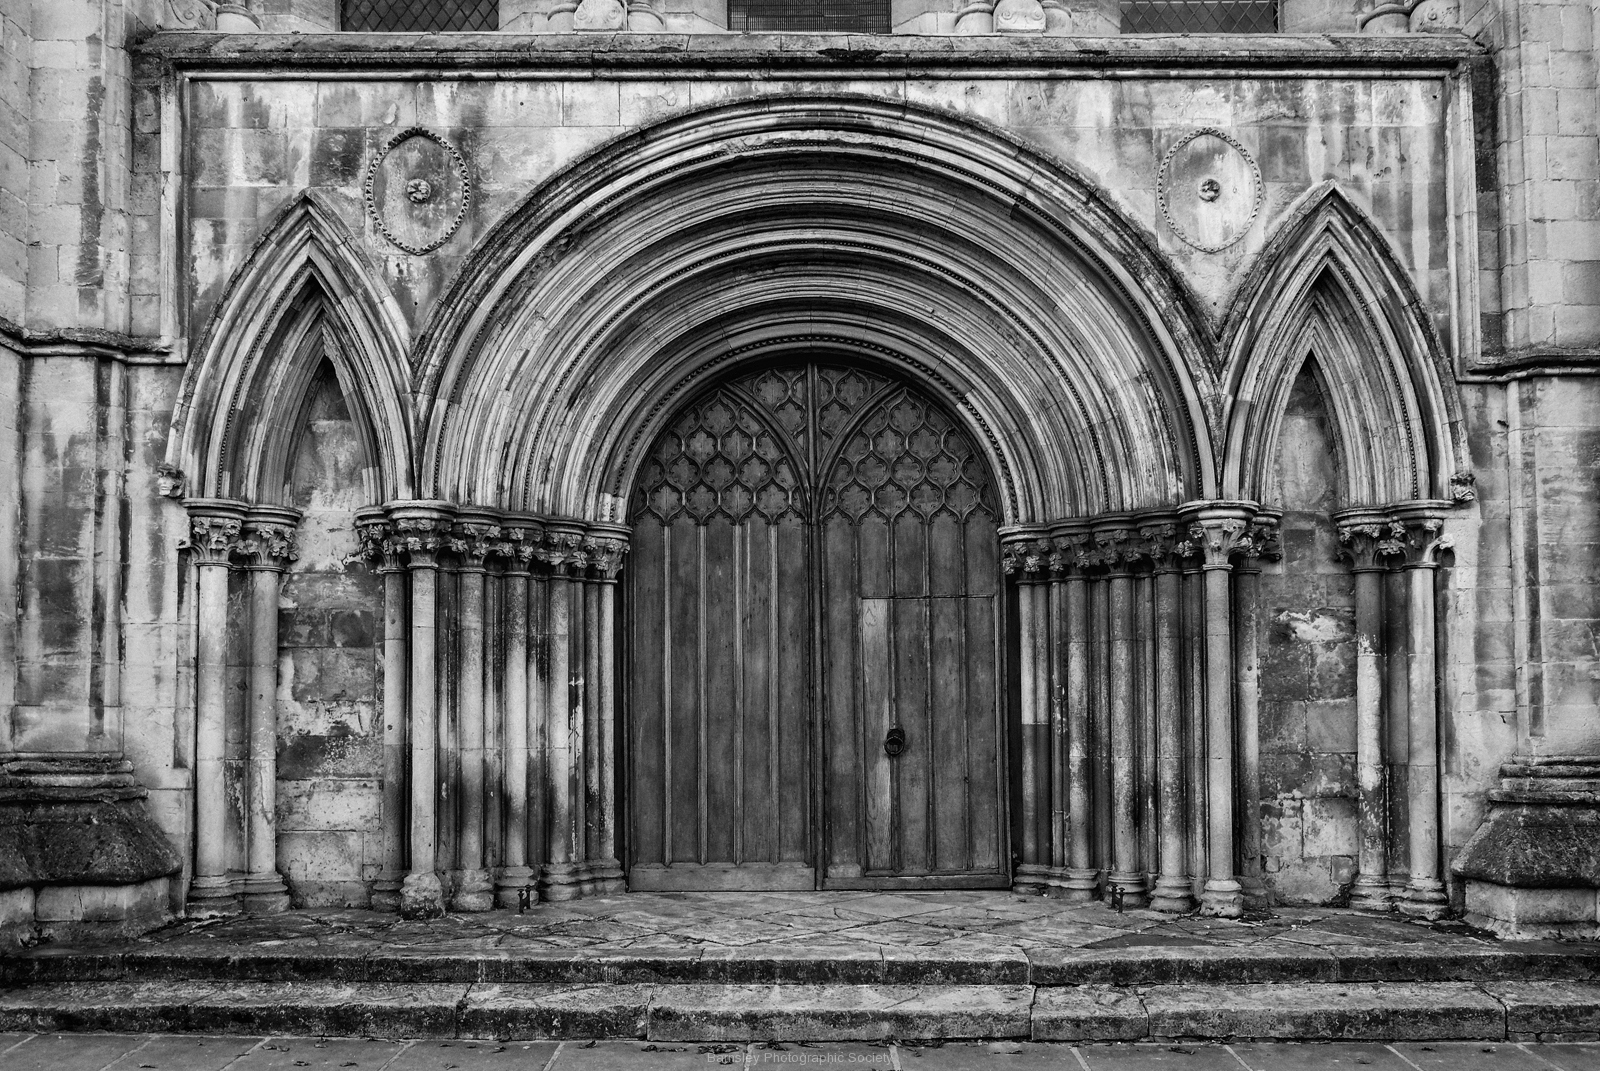 Beverley Minster North Entrance by Phil Edwards